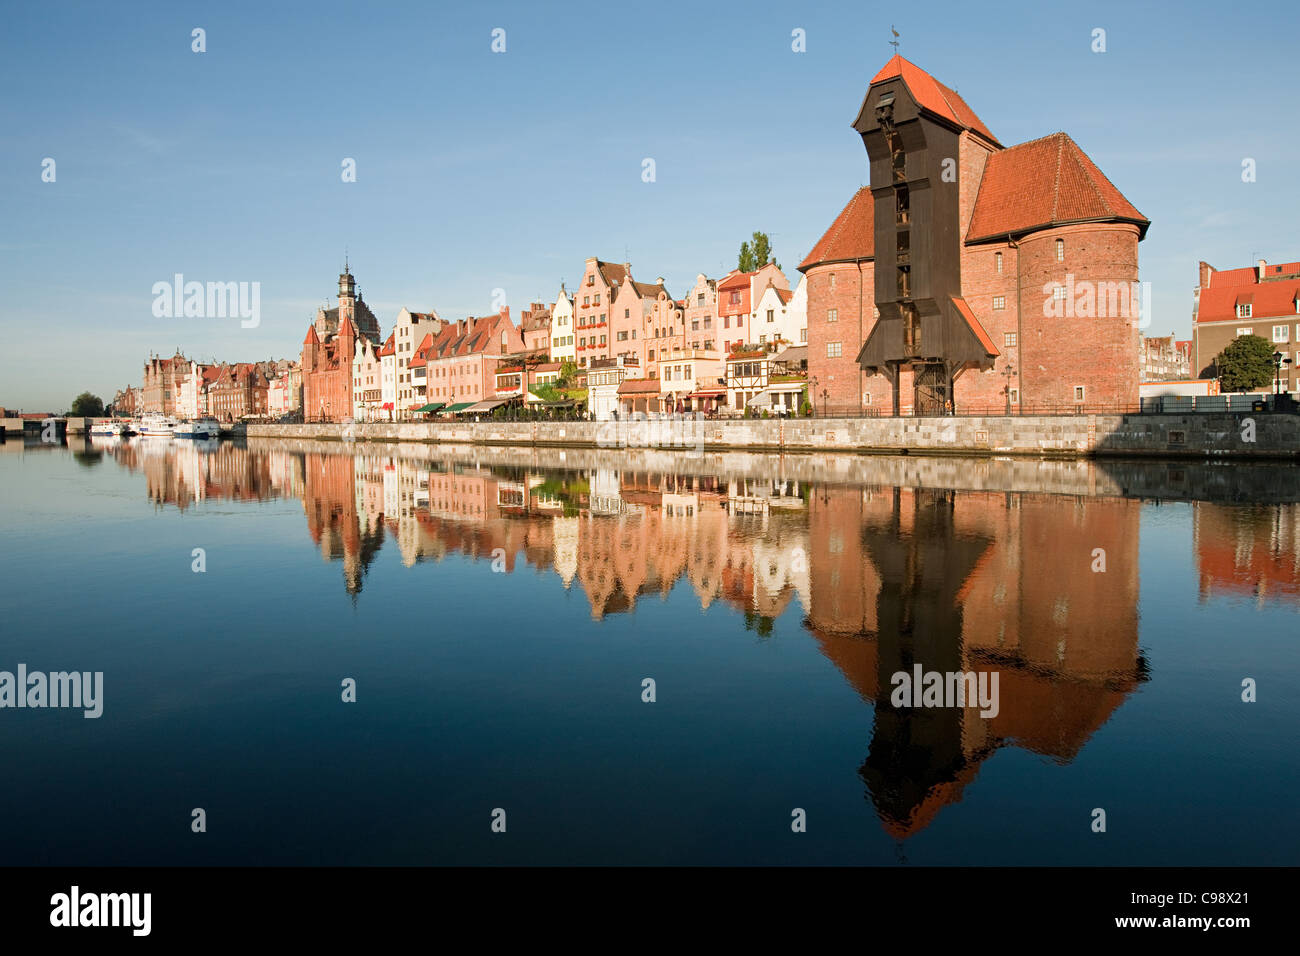 Medieval buildings reflected in water, Gdansk, Poland - Stock Image